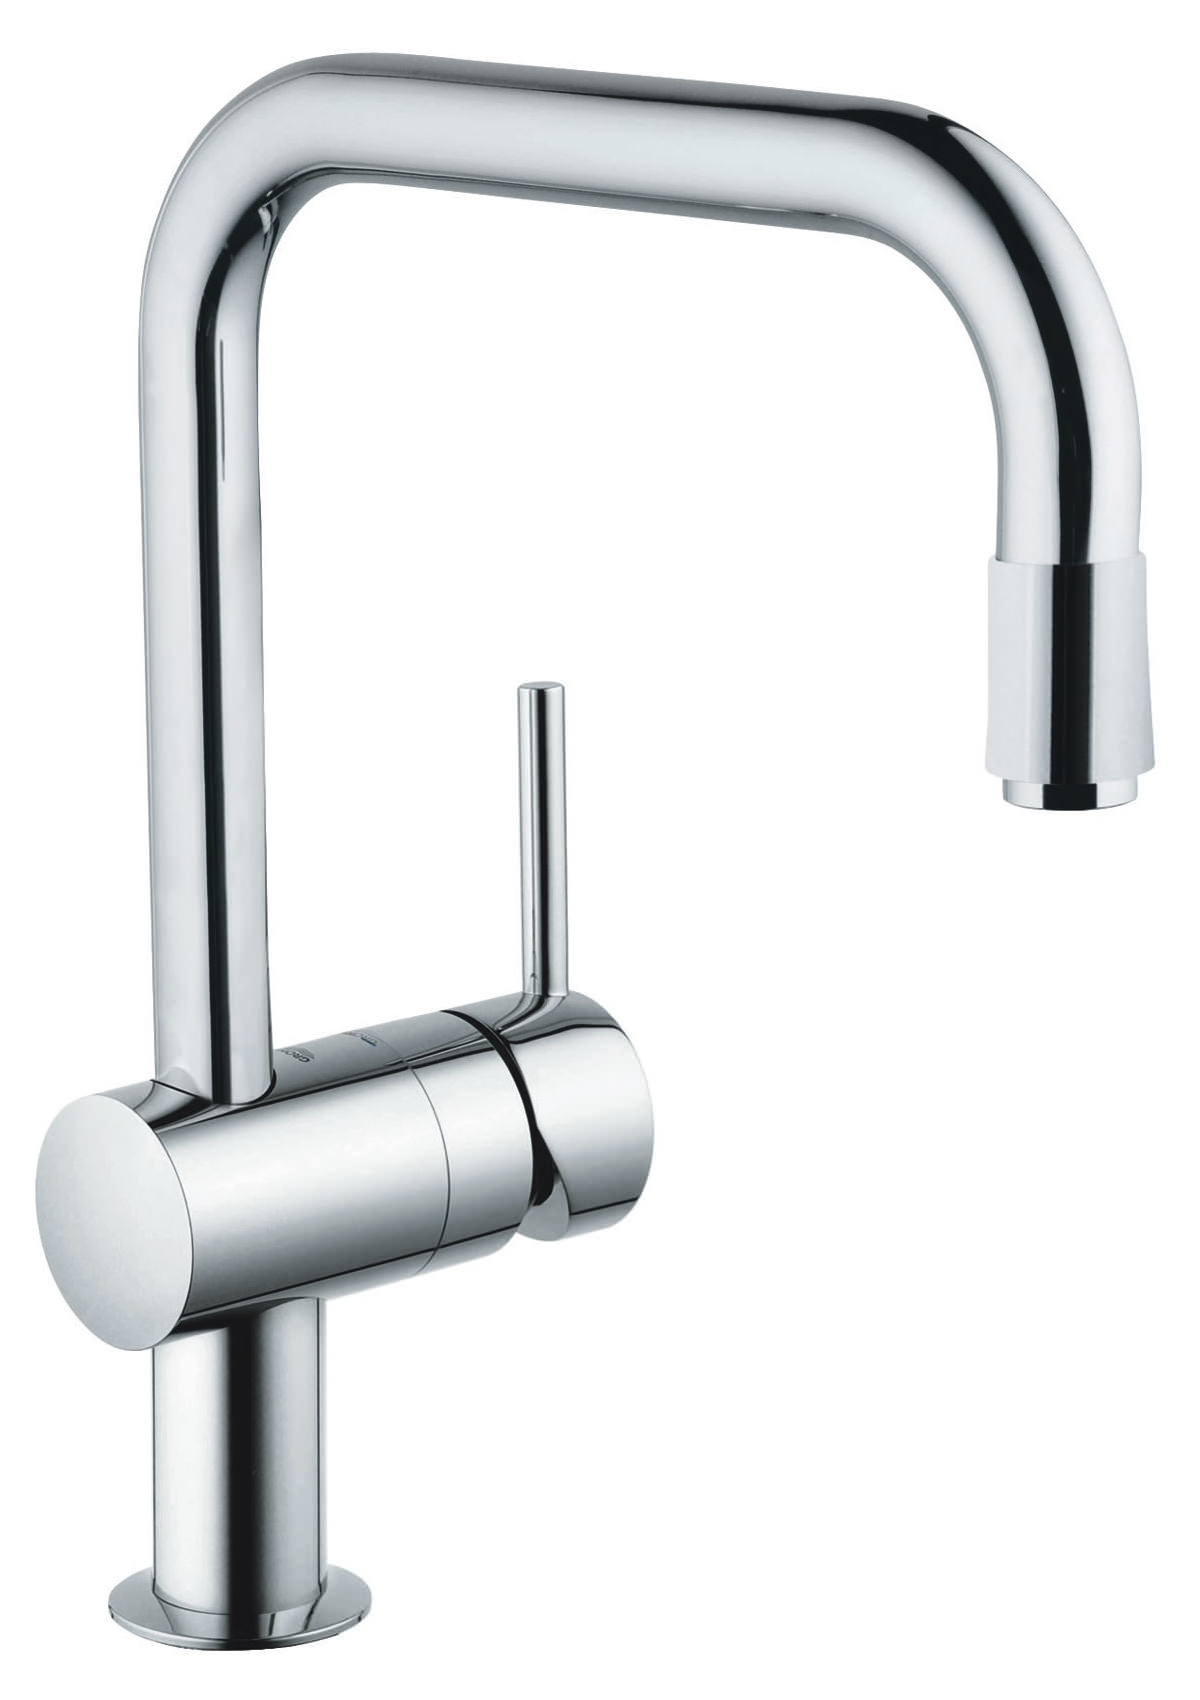 Grohe minta kitchen sink mixer tap with pull down spray head chrome - Shower head for kitchen sink ...